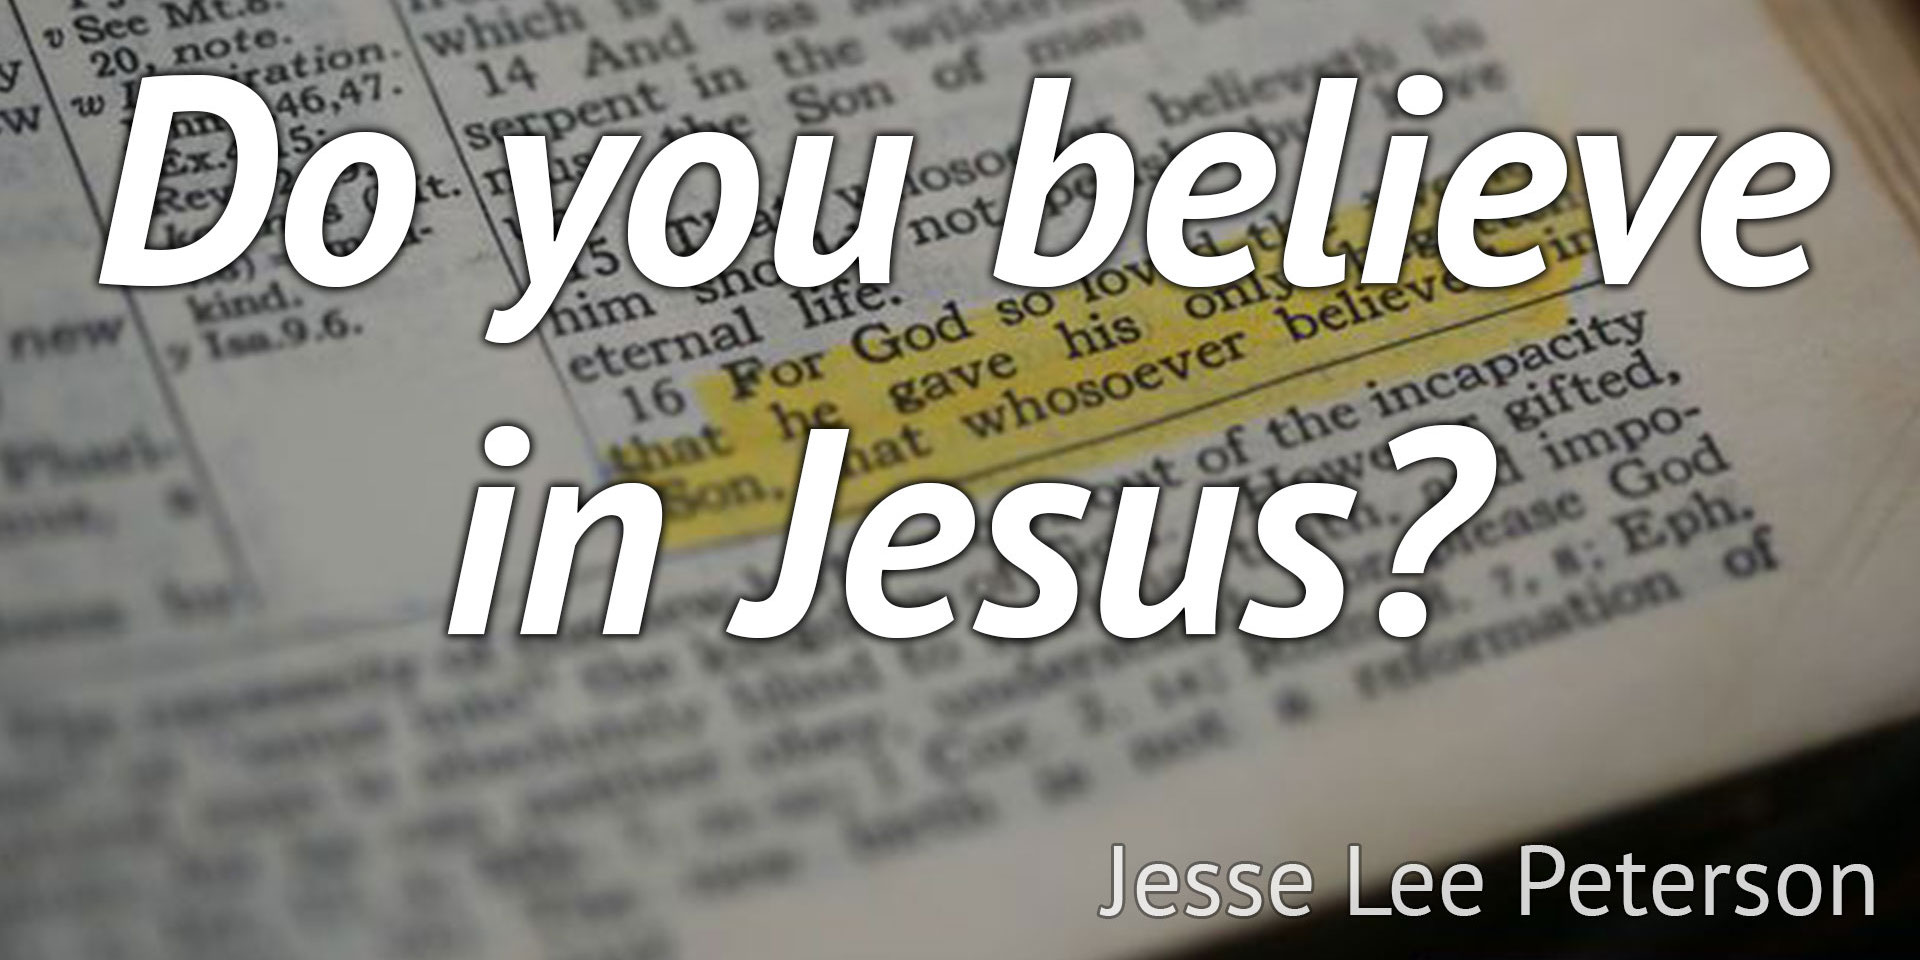 Jesse Lee Peterson Biblical Question: Do You Believe in Jesus?